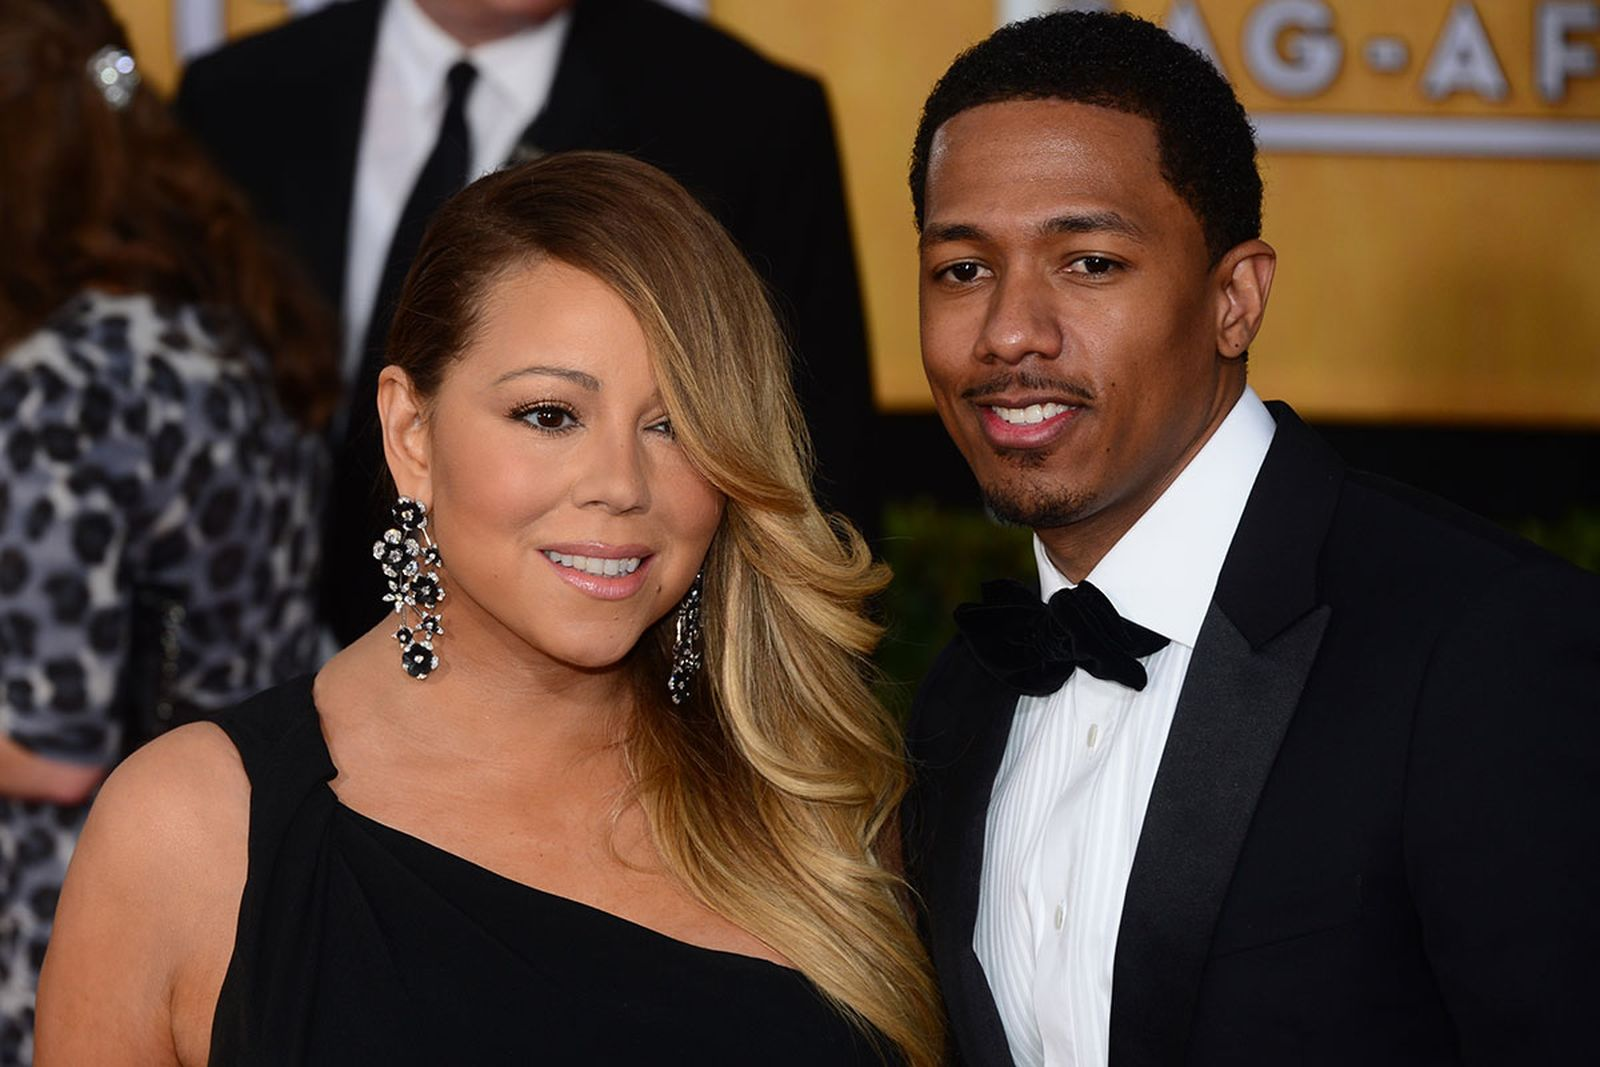 Nick Cannon and Mariah Carey on the red carpet